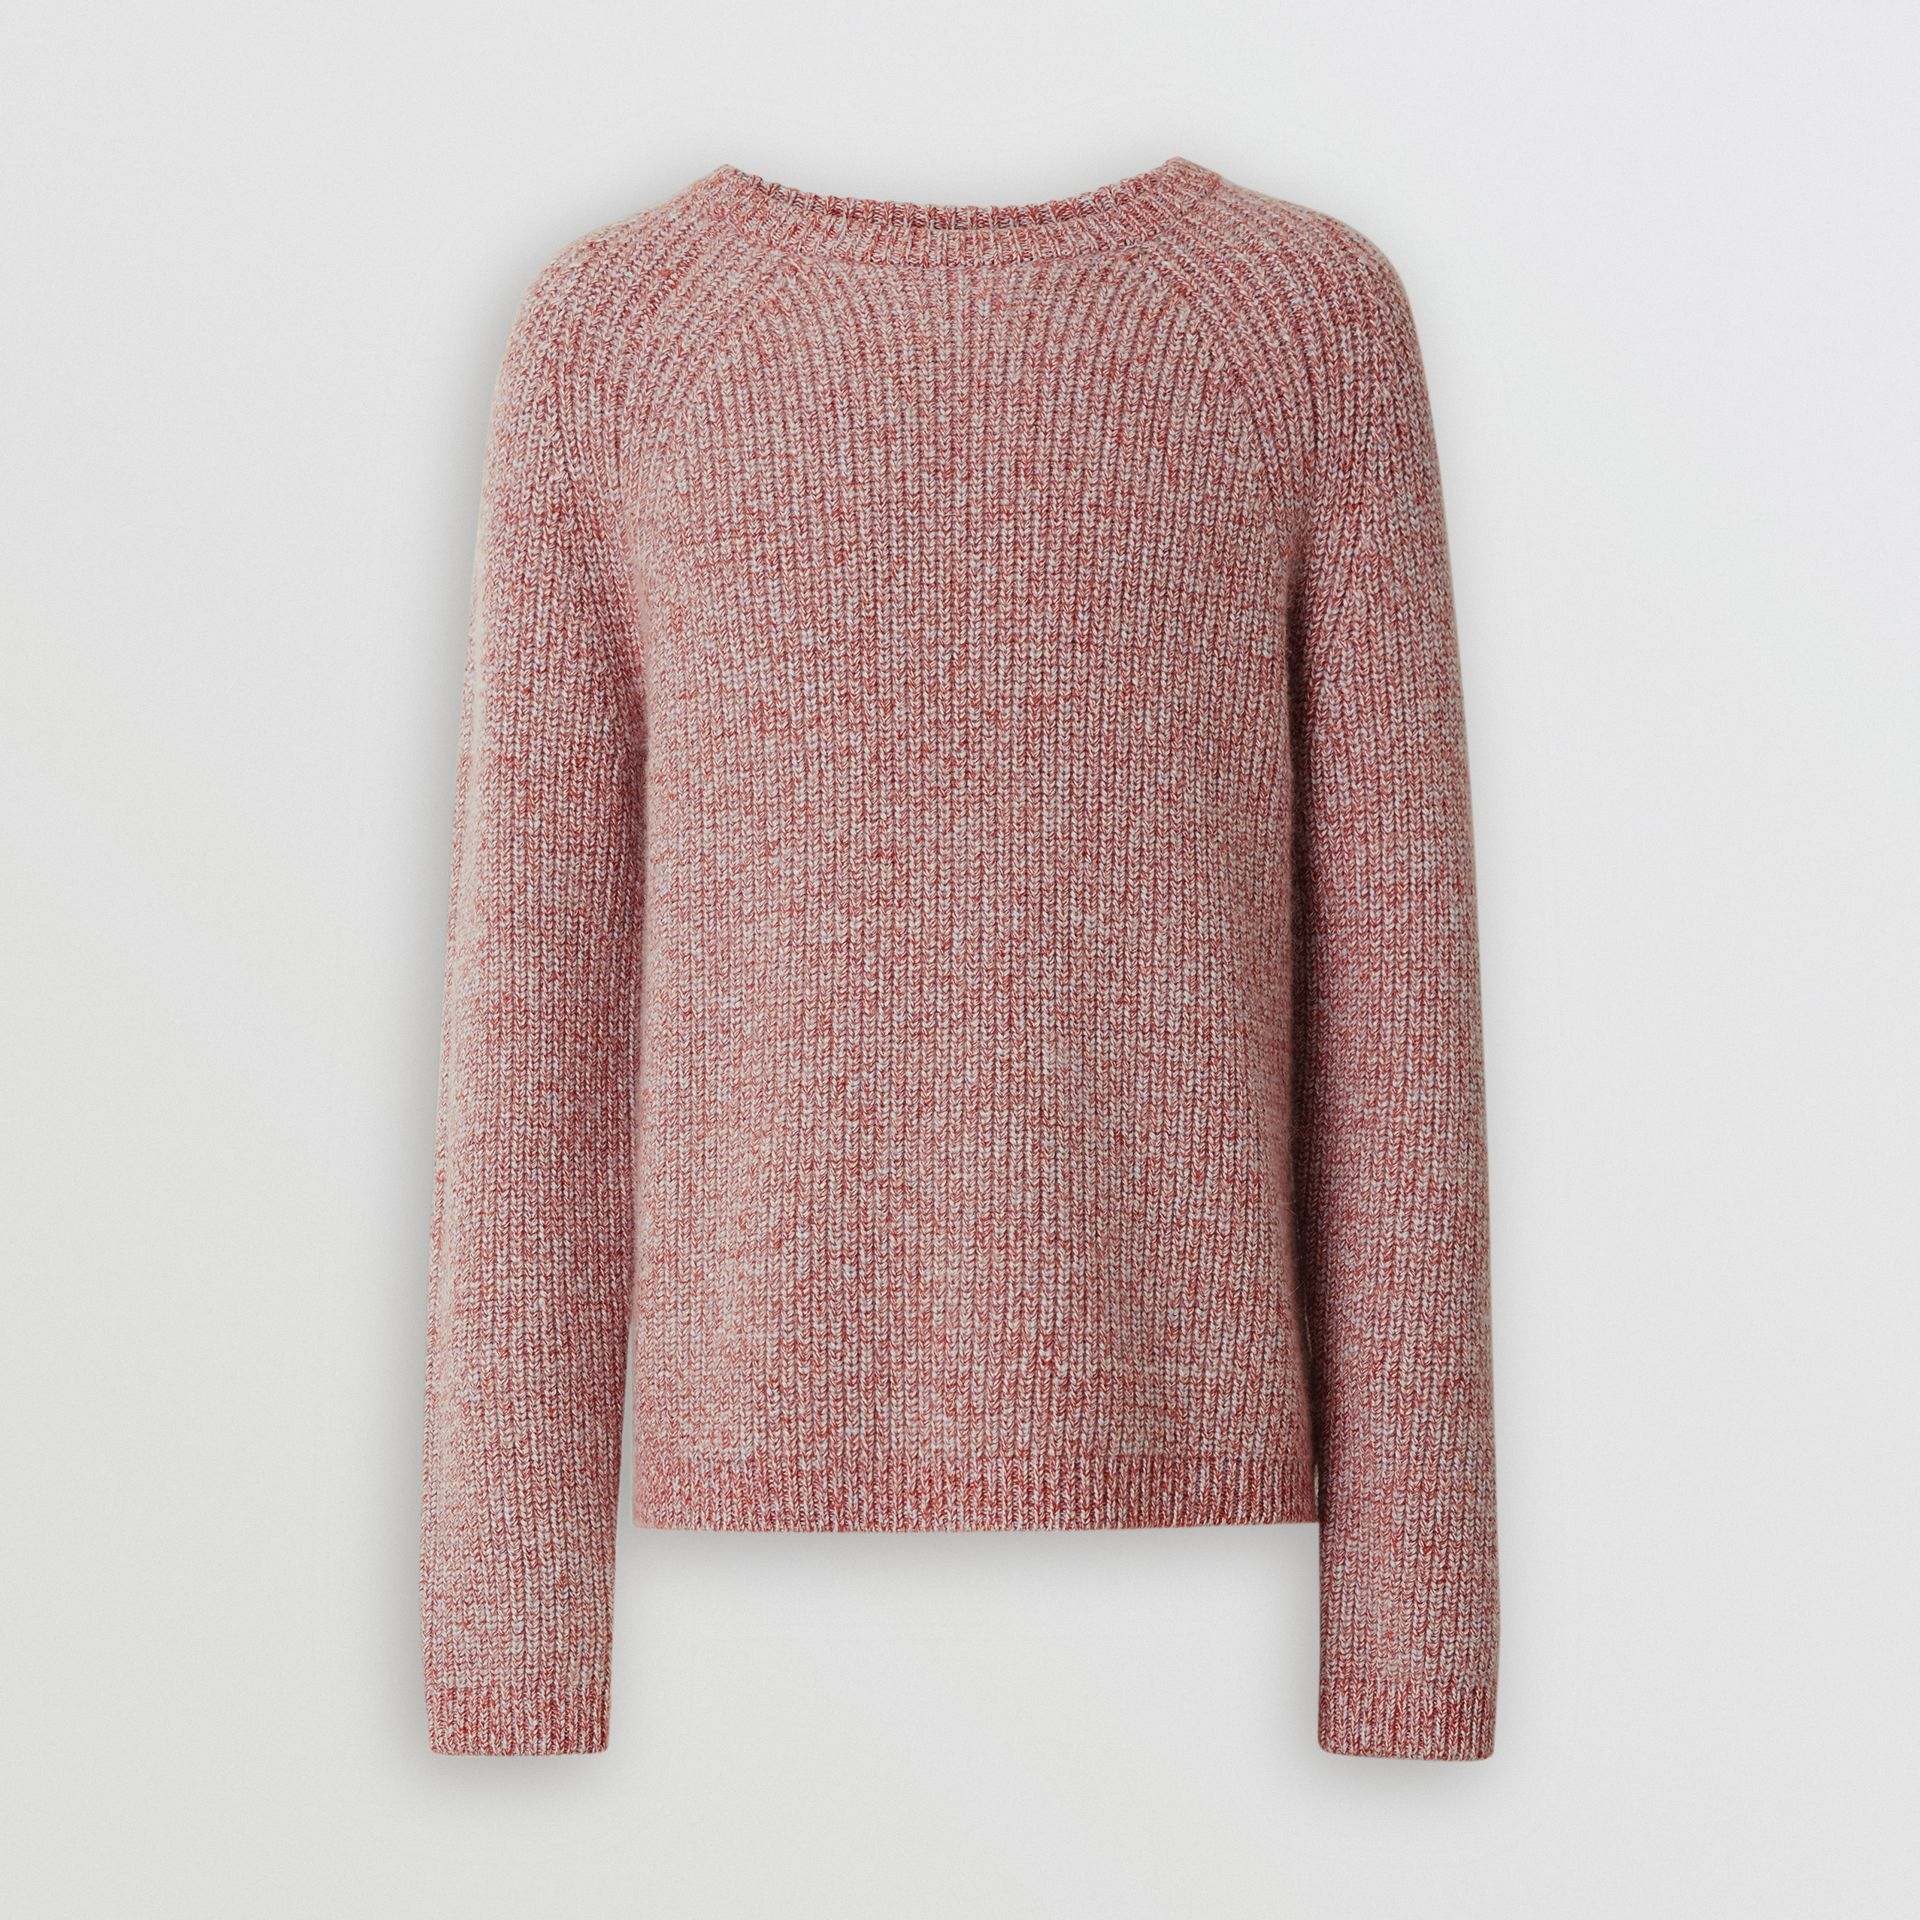 Rib Knit Cashmere Cotton Blend Sweater in Apricot Pink - Men | Burberry - gallery image 3